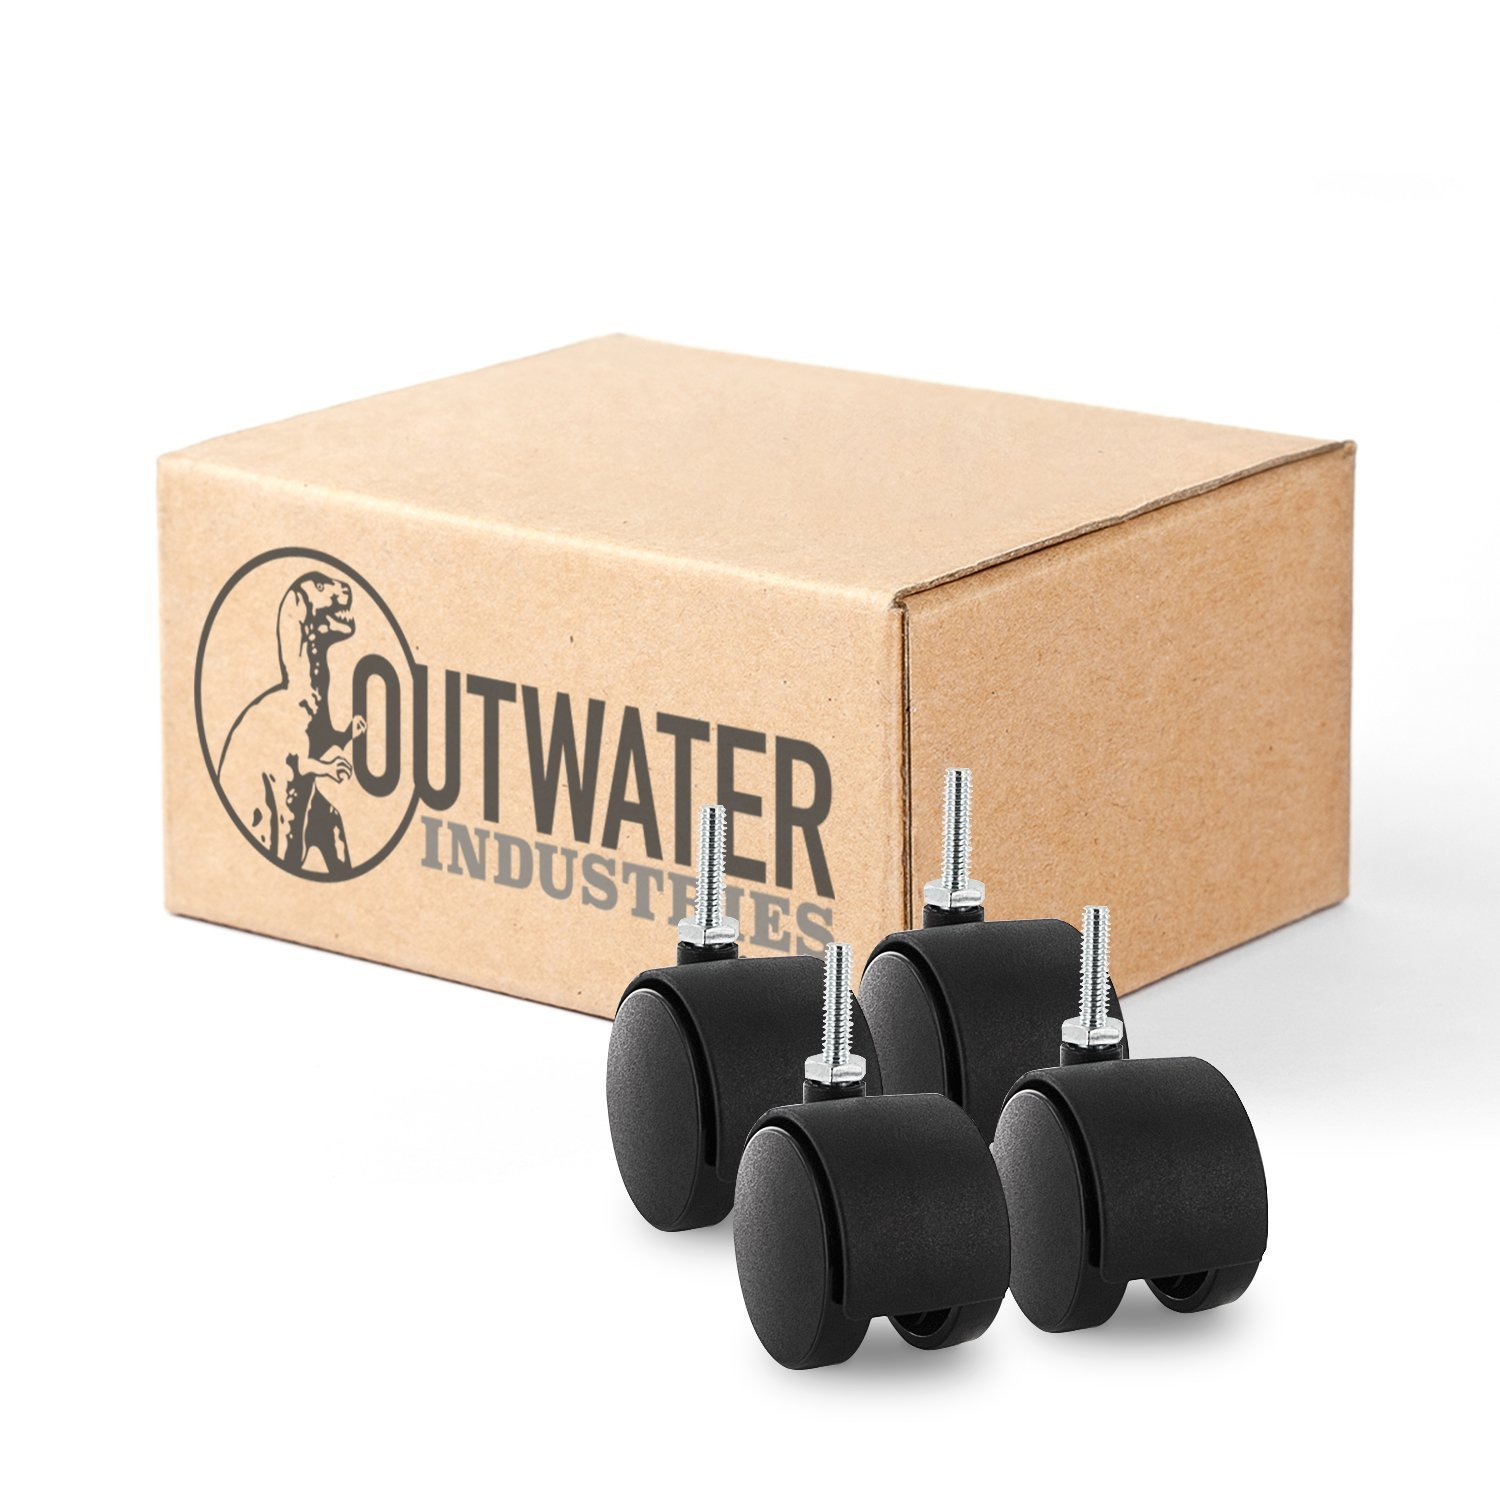 Outwater's Premium 2 inch Heavy Duty Gusset Reinforced Caster Wheels Without Brakes (Samson) SAMS-4-BK with 1/4-20 x 1'' Threaded Stem